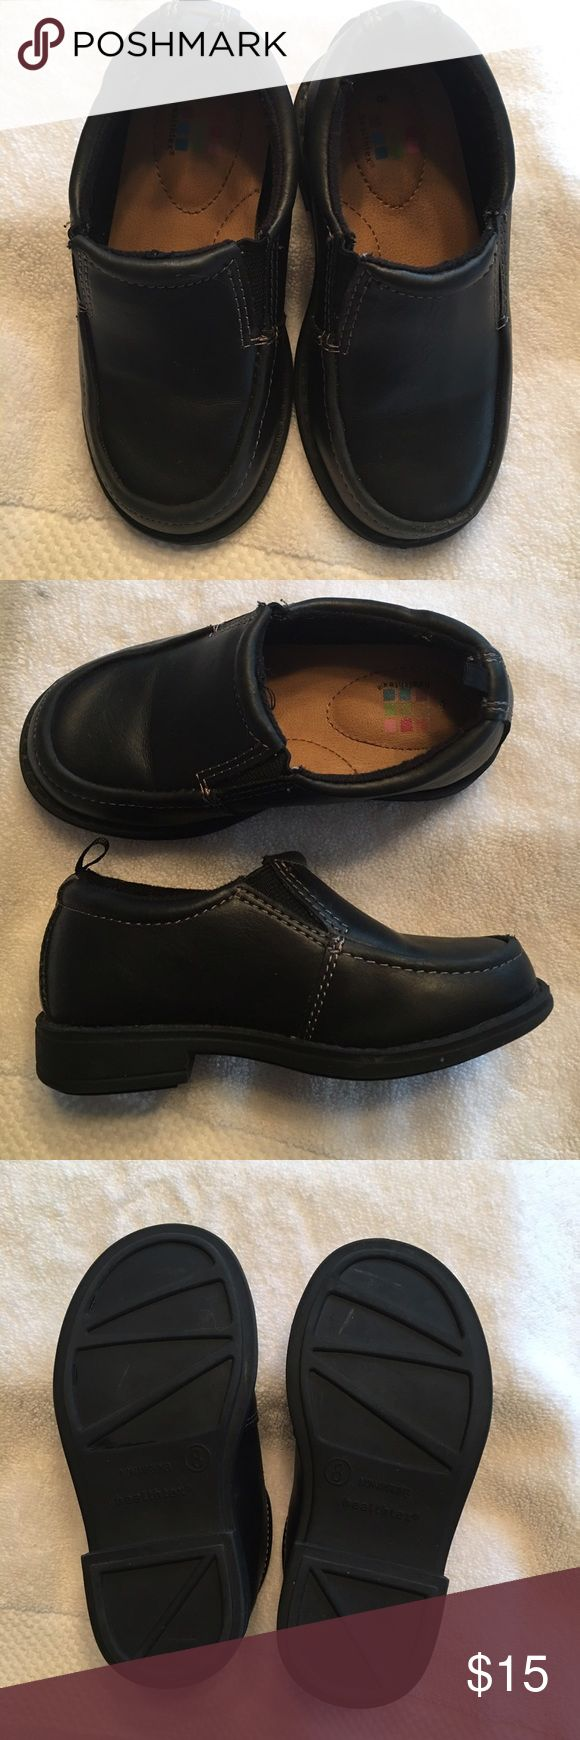 Toddler boy dress shoes Healthtex black toddler dress shoes.  Wore 1 day only.  Very cute Shoes Dress Shoes